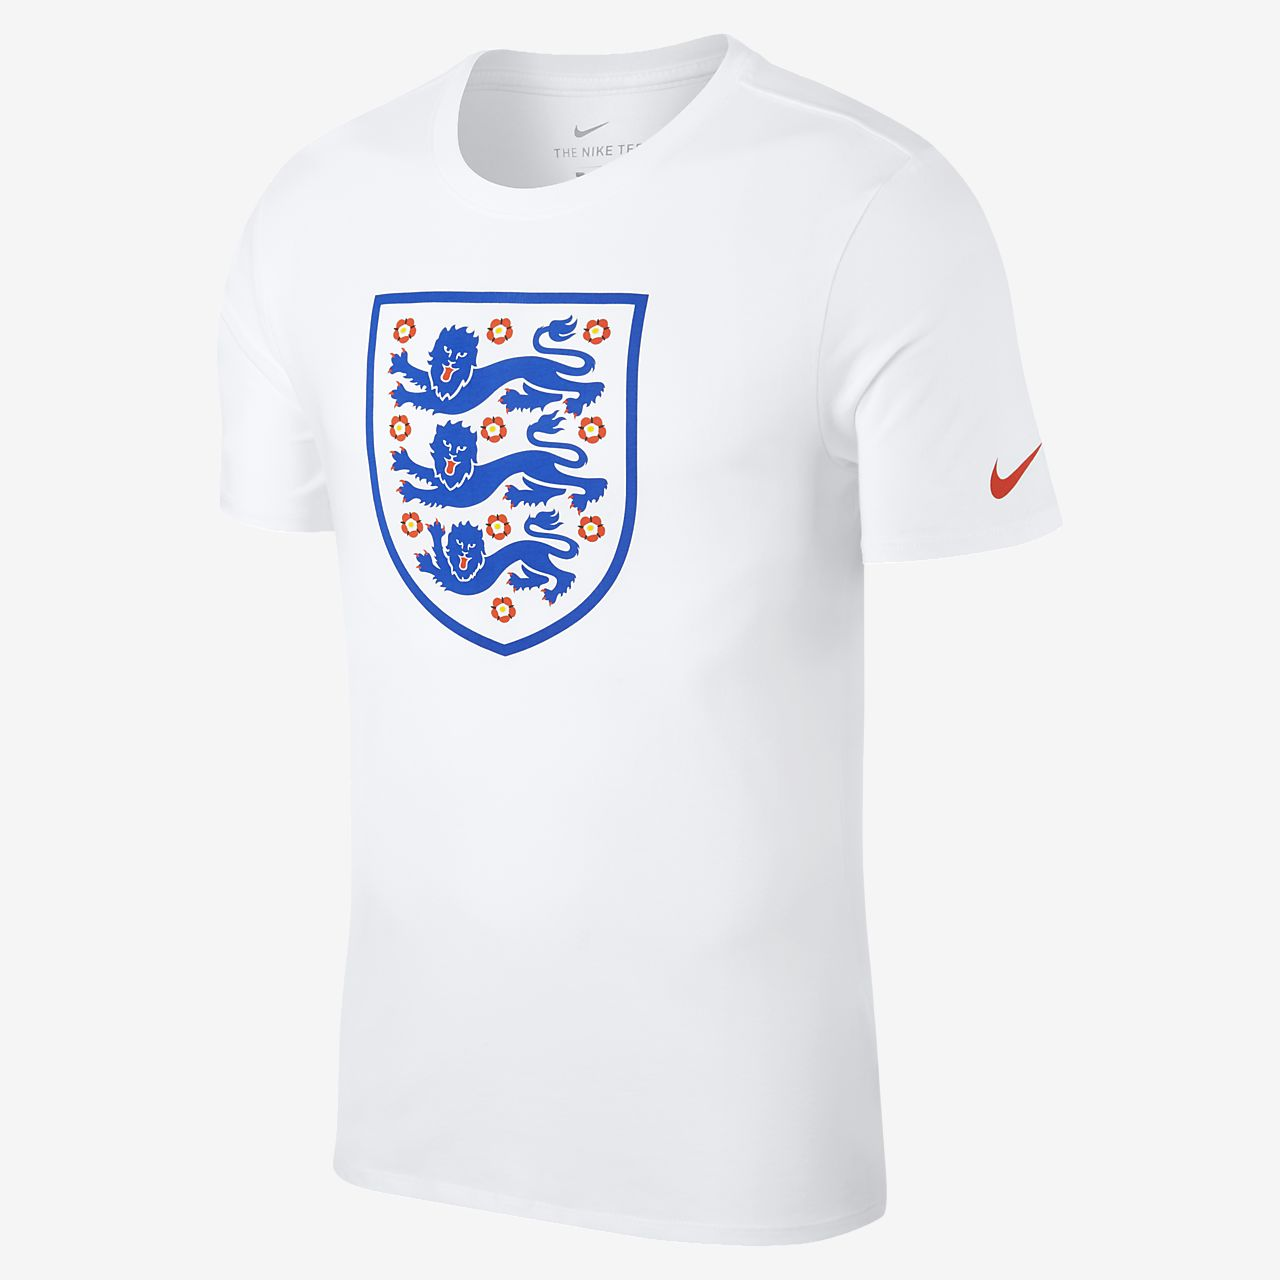 England crest men 39 s t shirt bg for Nike flyknit t shirt